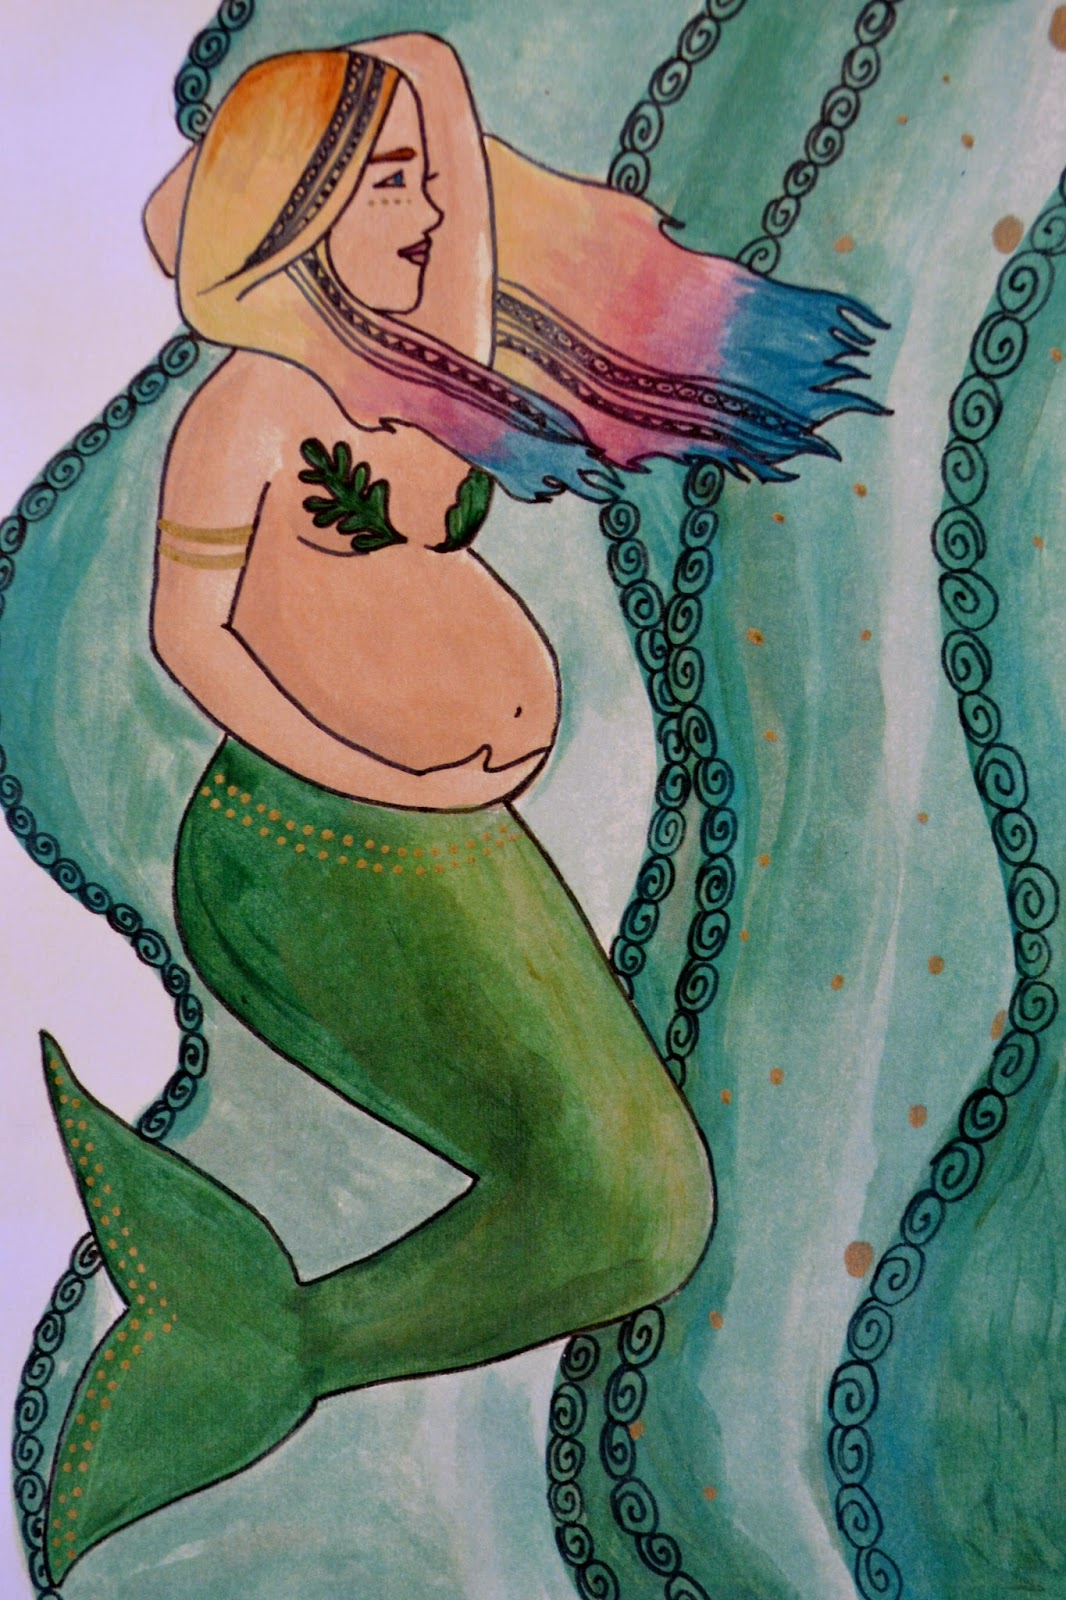 pregnant mermaid pregnancy art catie atkinson spiritysol